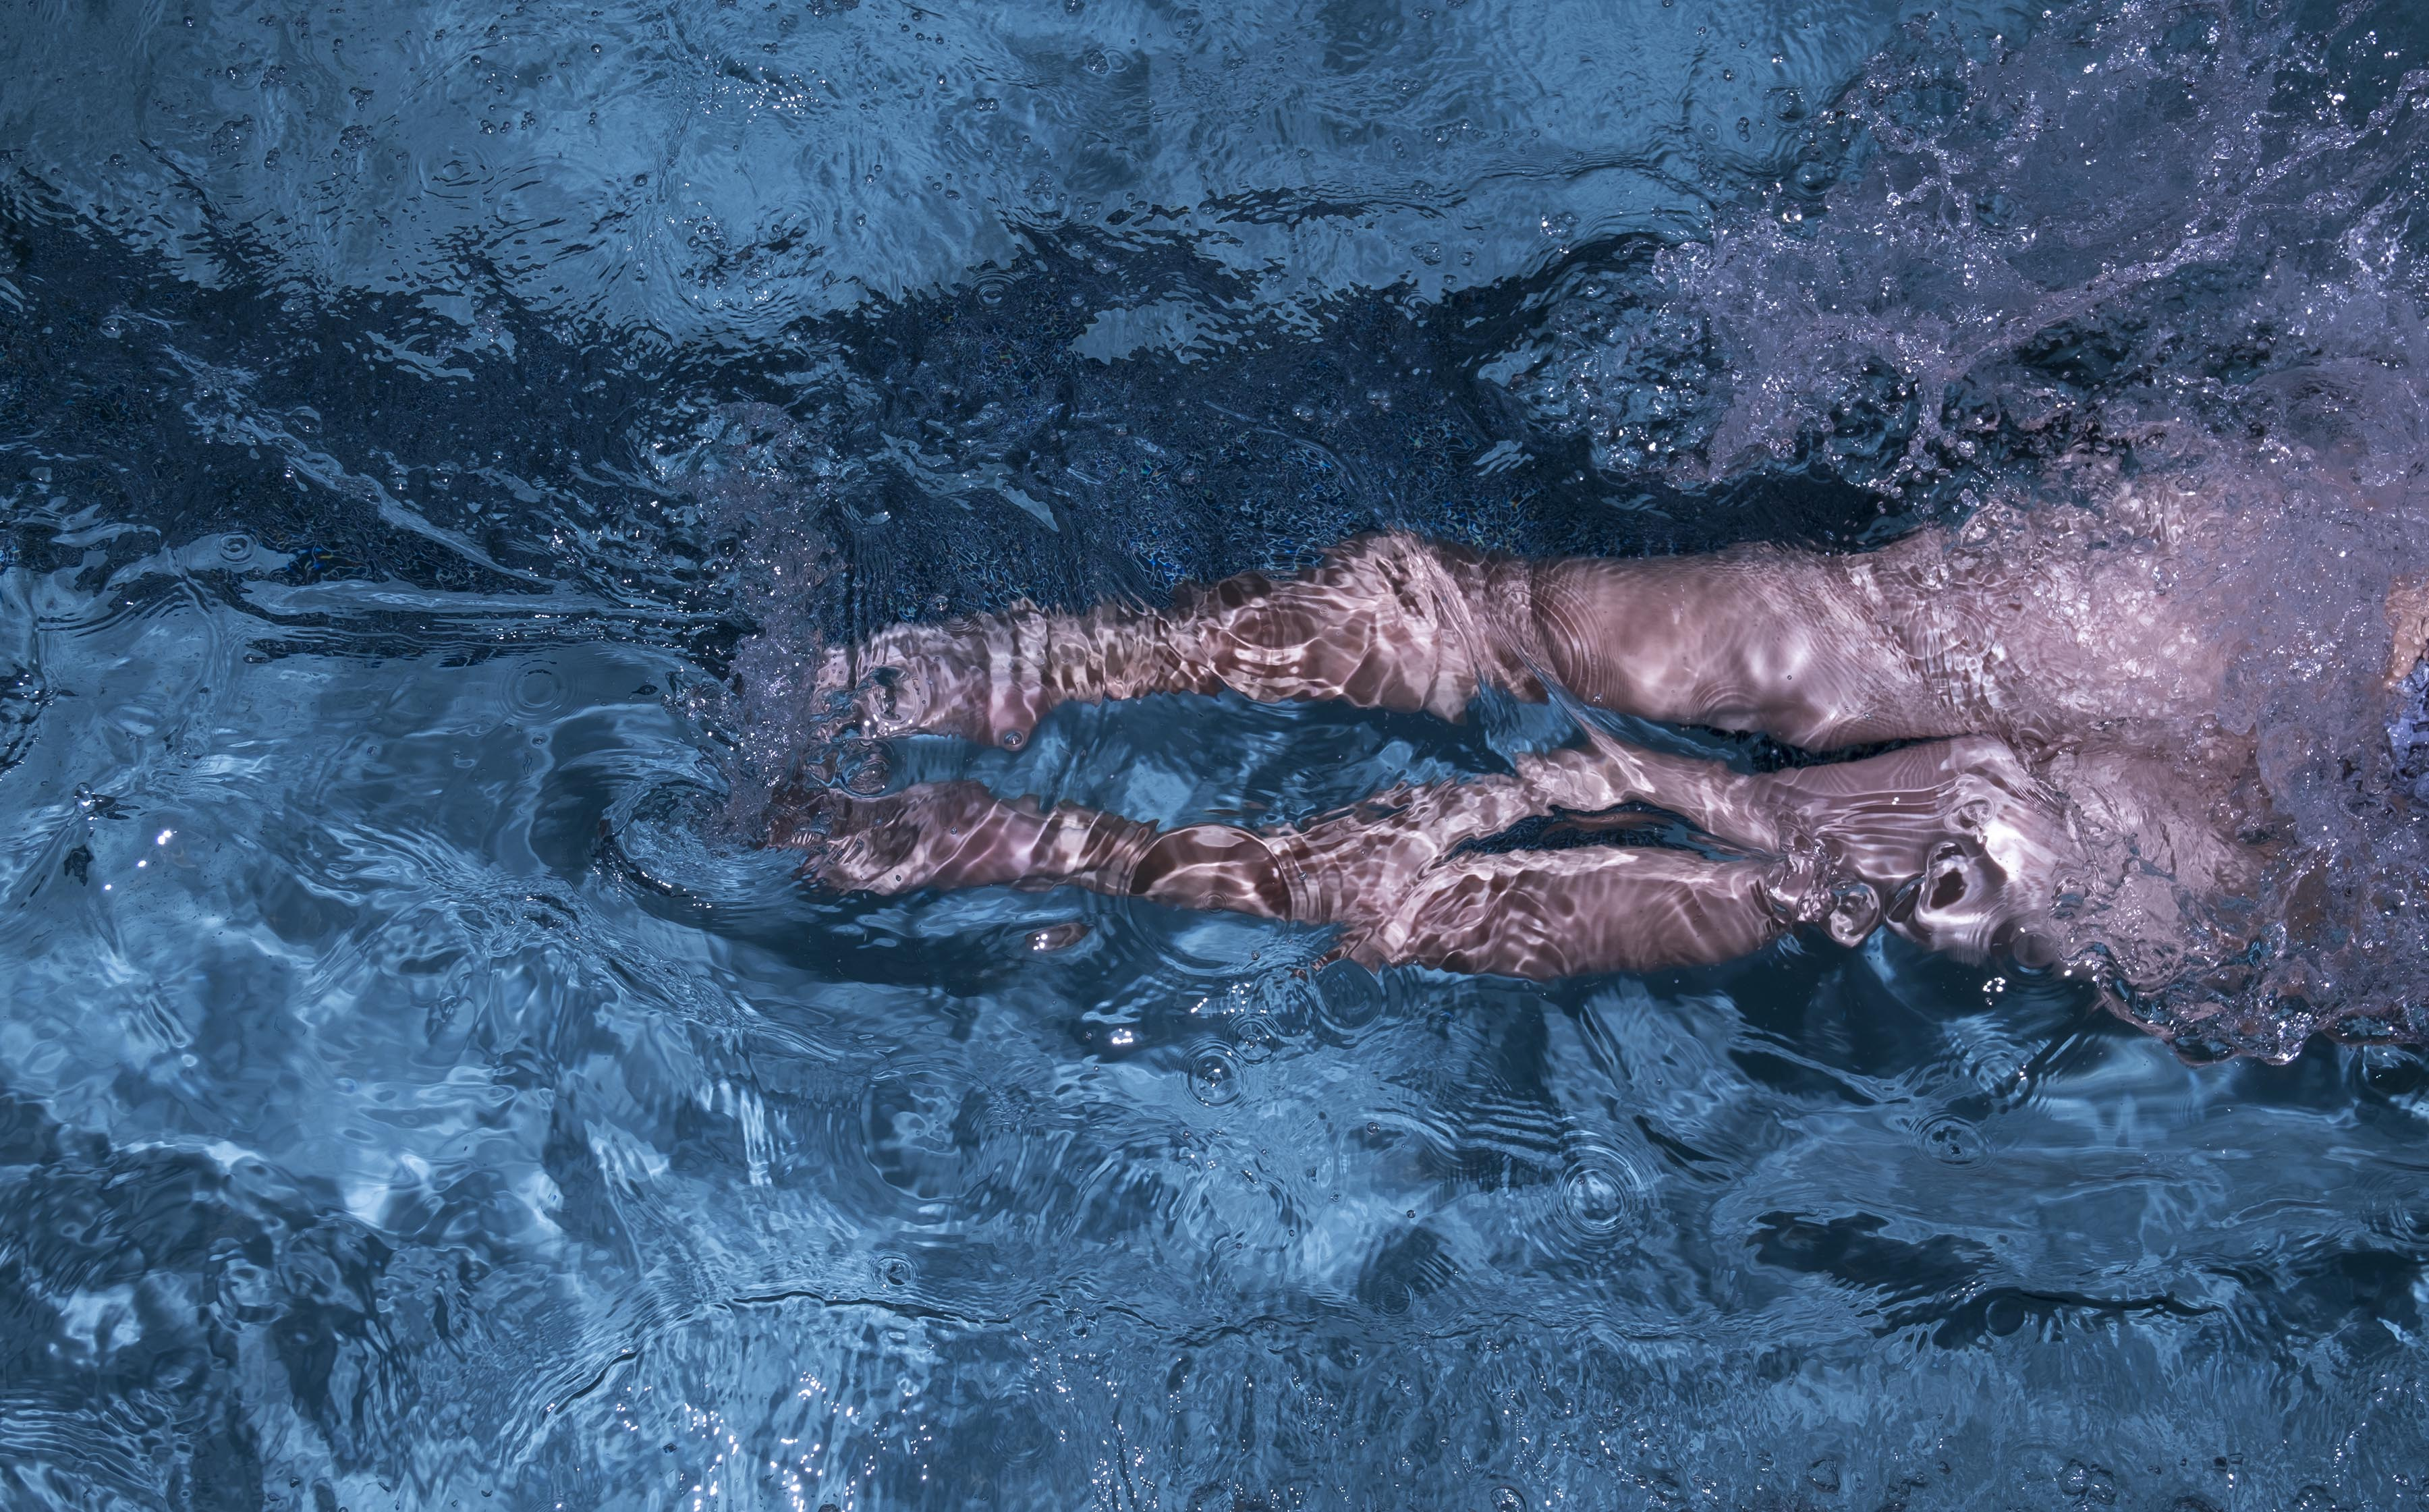 A photograph of a woman's legs disappearing to the right as she swims in a pool lane, splashing lots of water, shot from above.